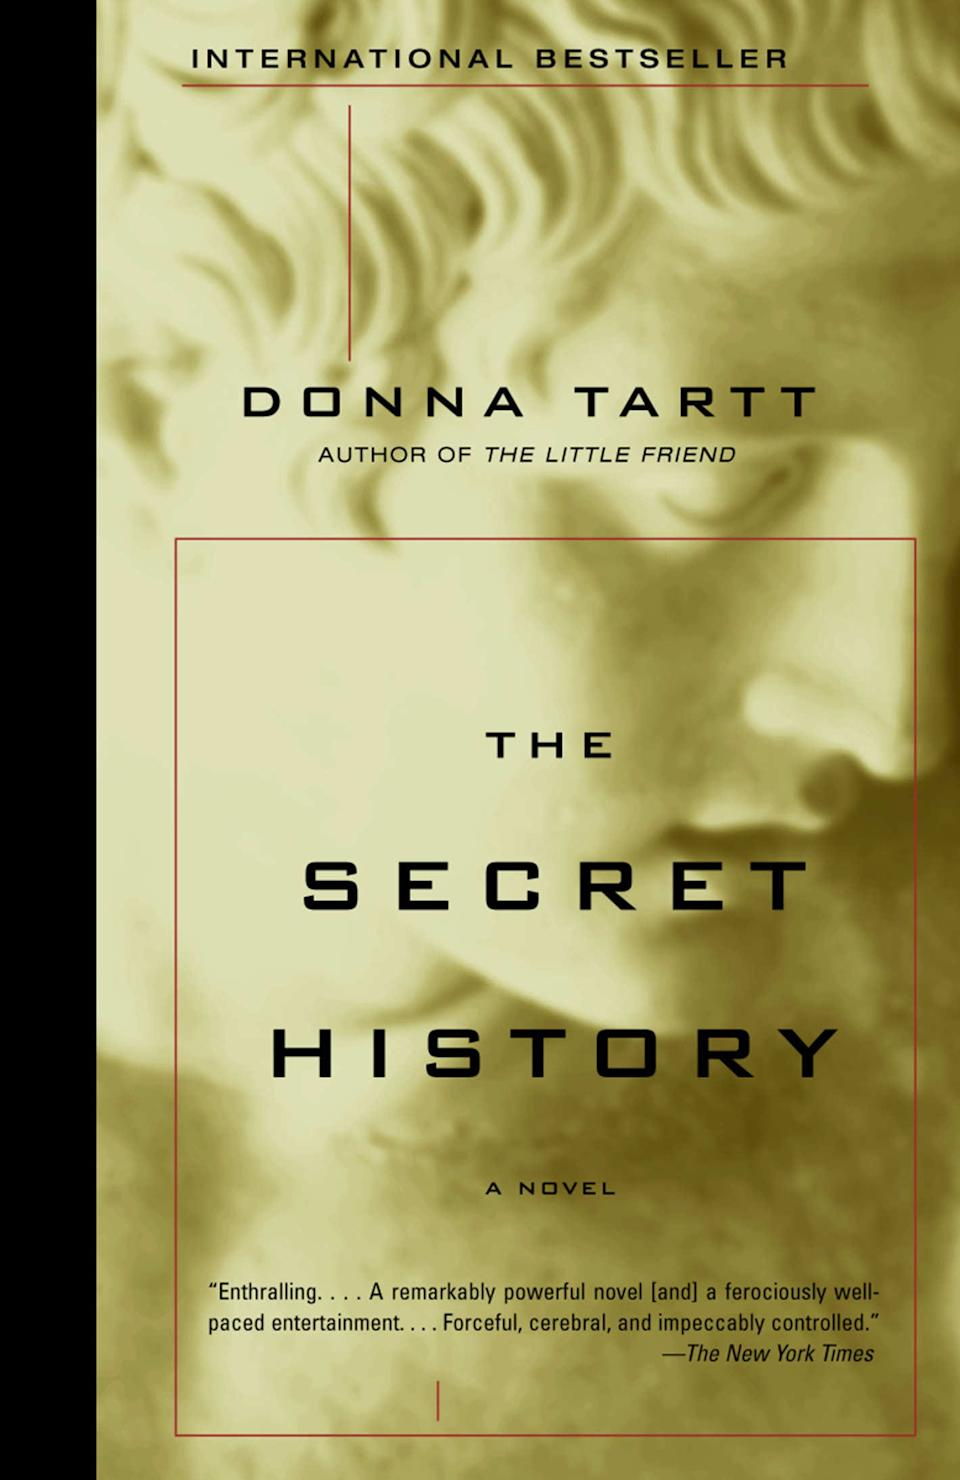 Donna Tartt has published only three novels in 20 years.